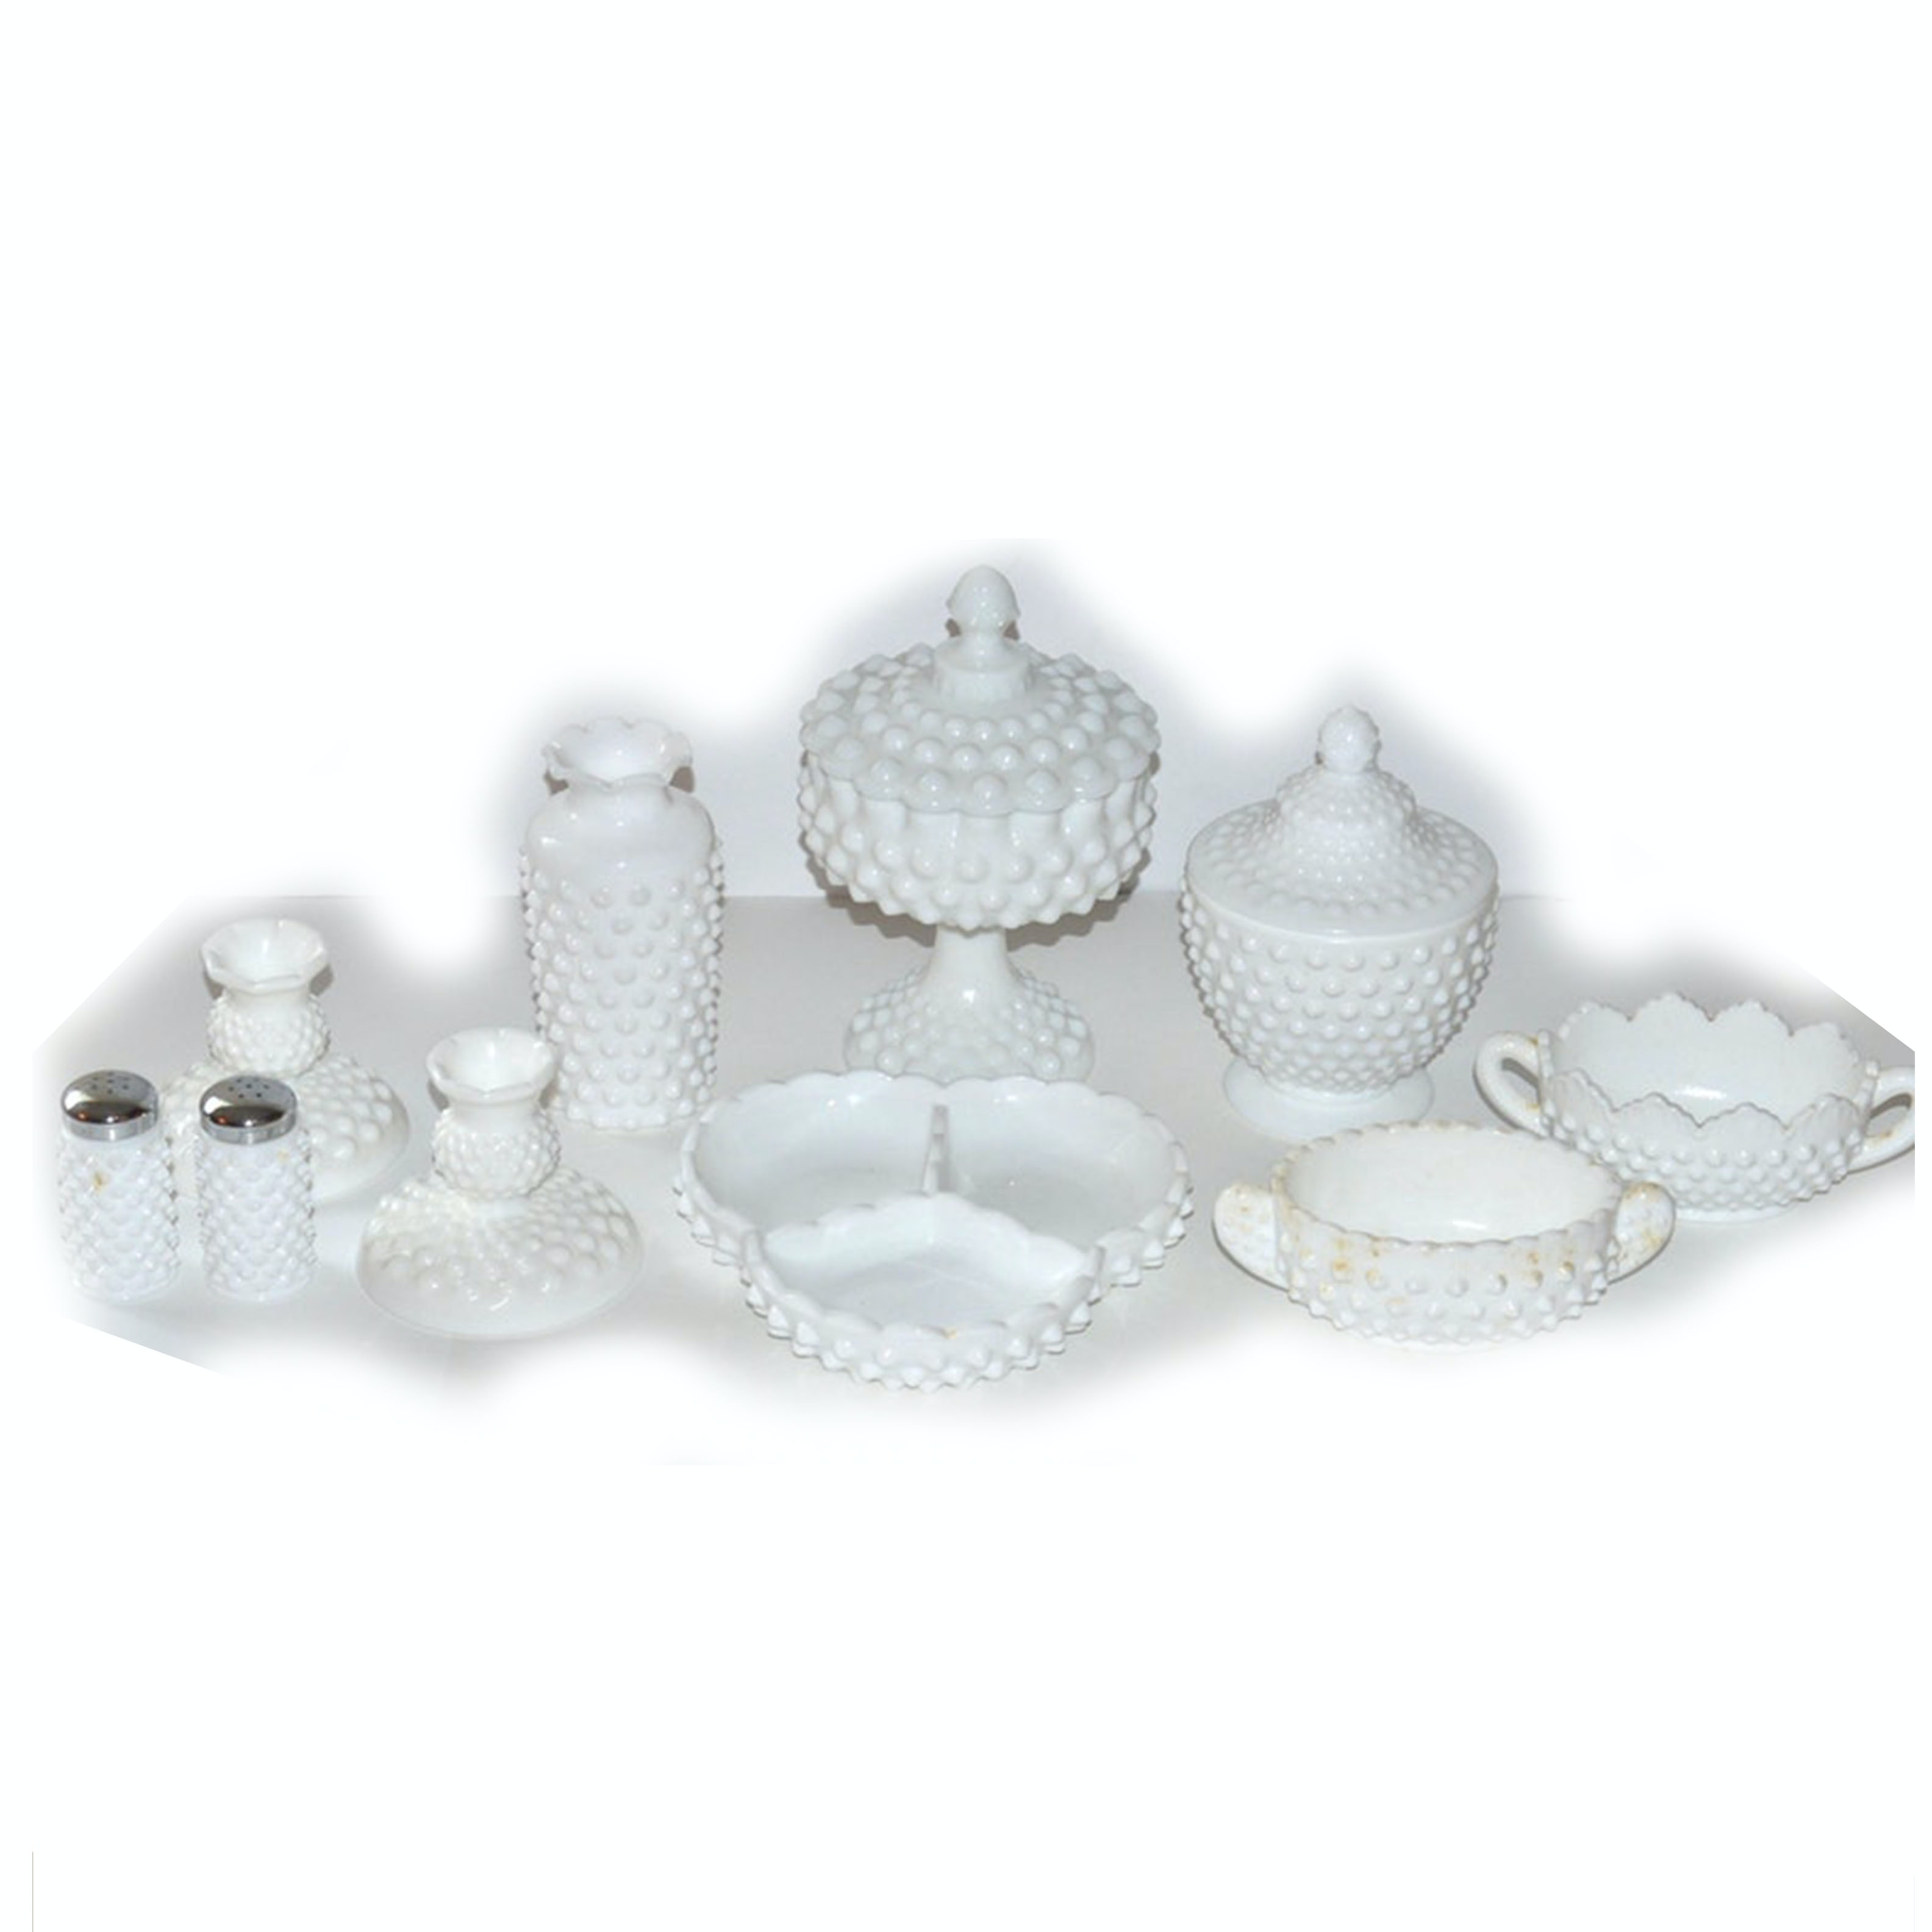 Fenton Hobnail Milk Glass Dishes and Tableware